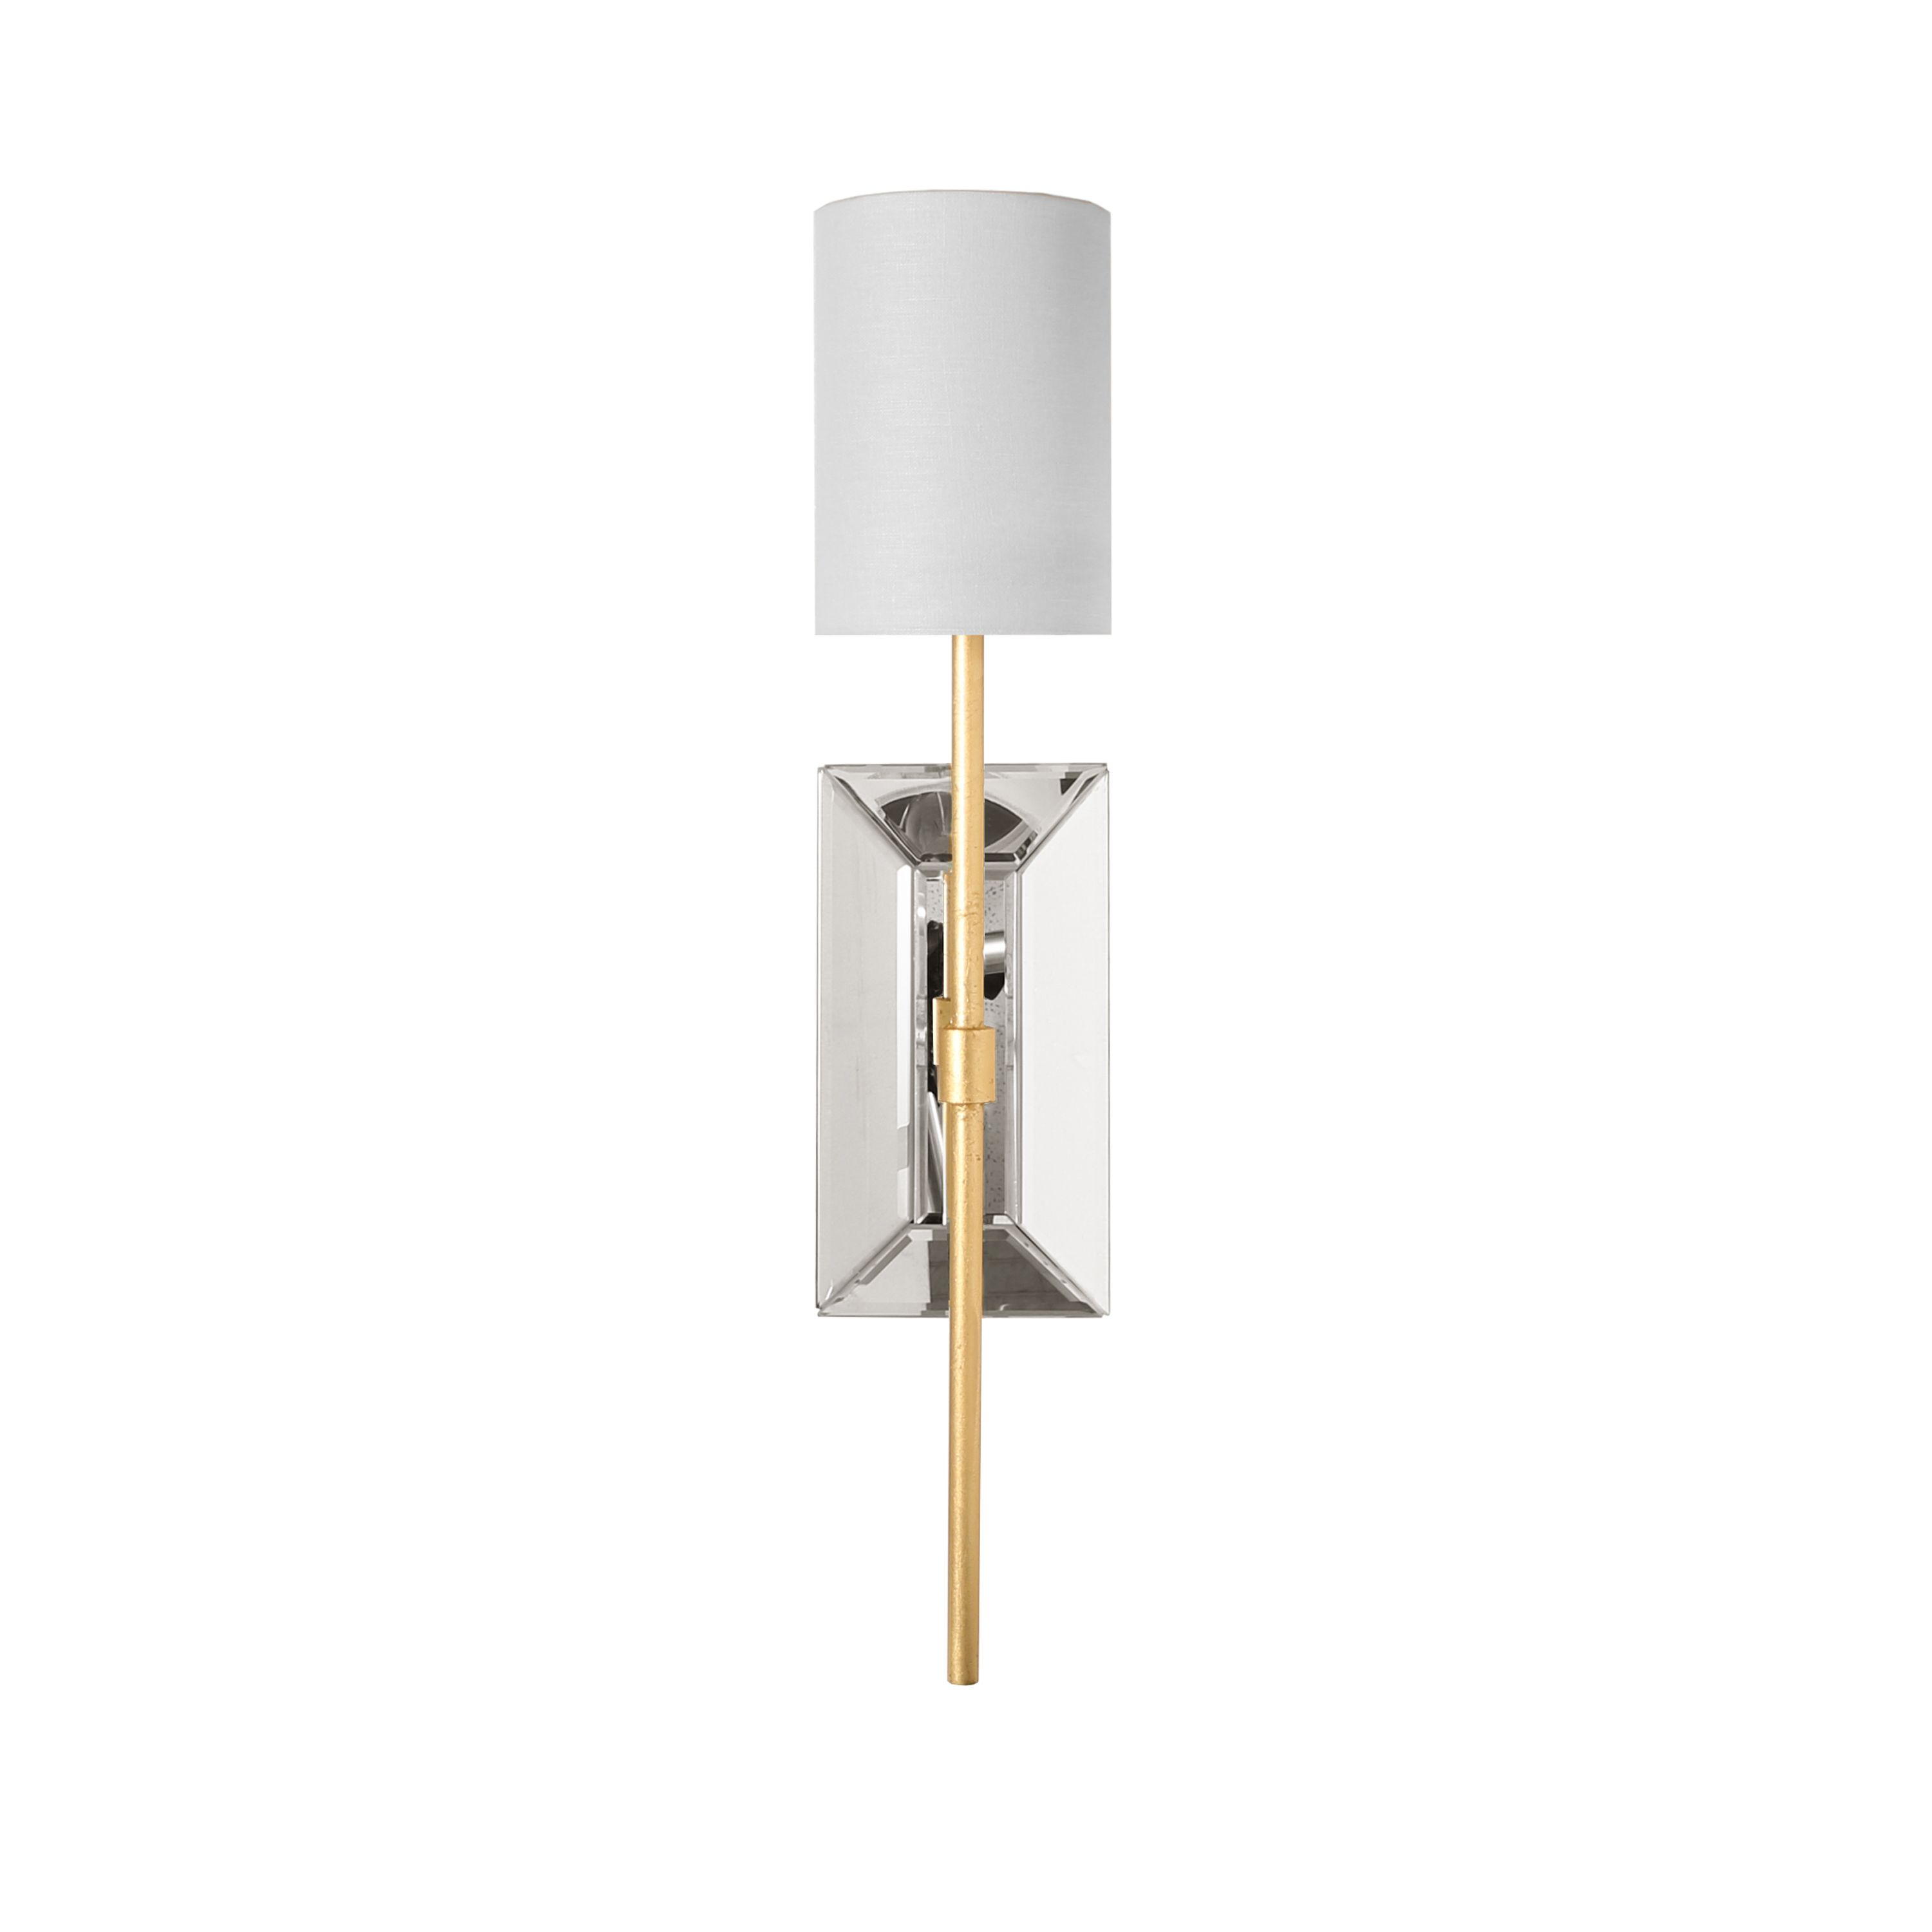 Mirror & Gold Leaf Wall Sconce with White Linen Shade